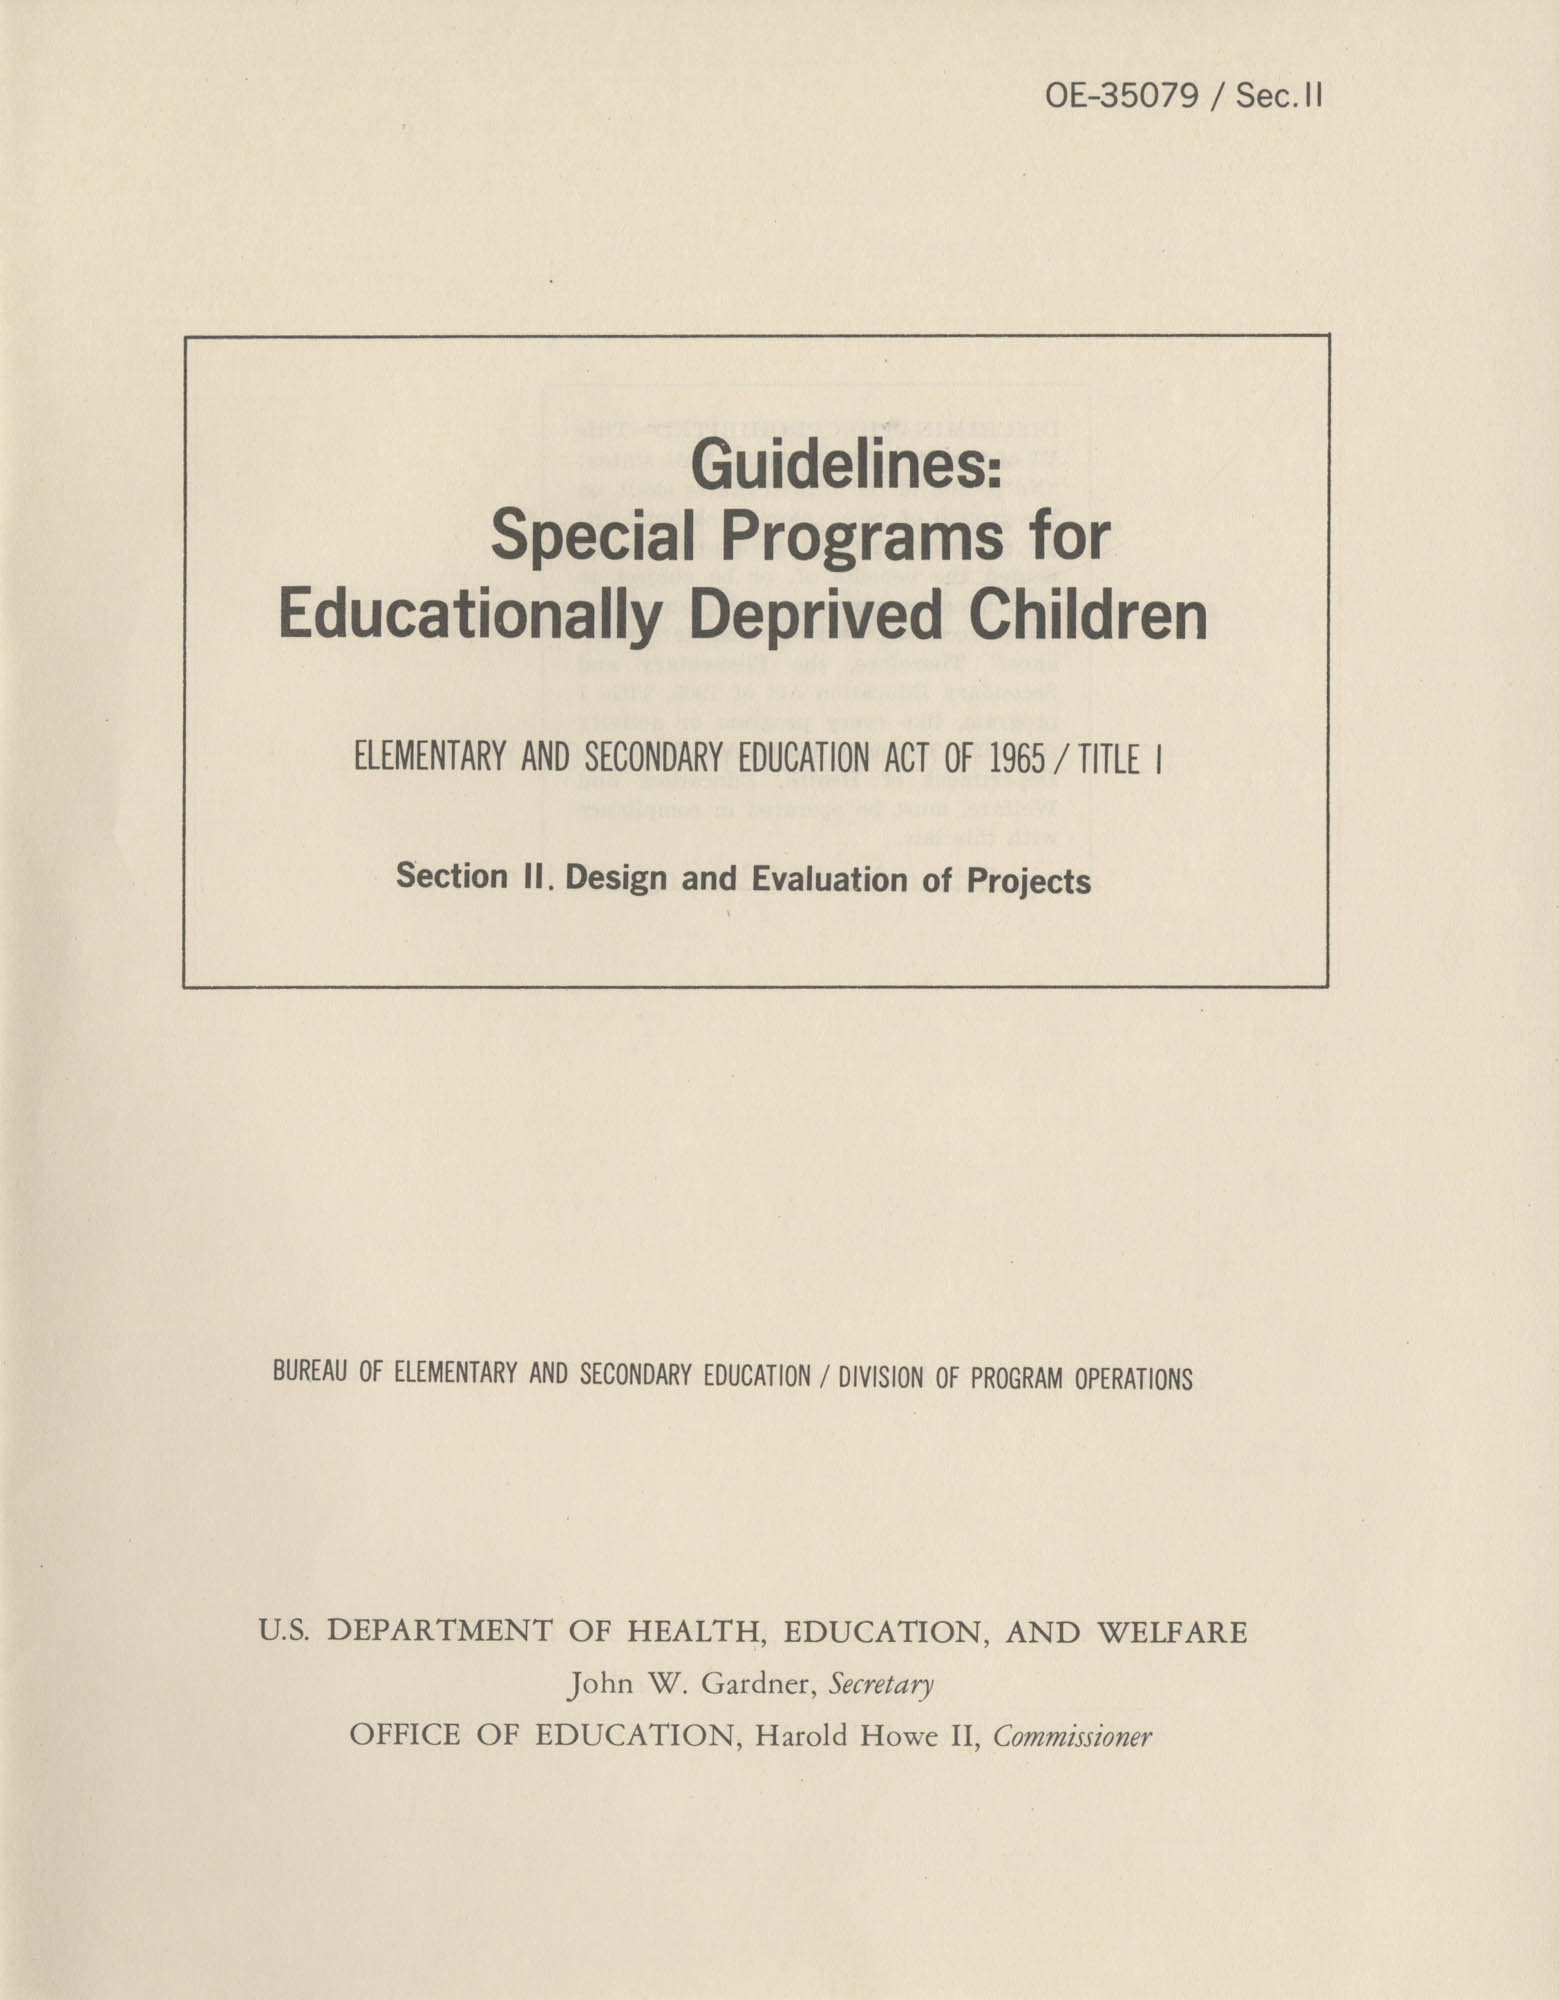 Guidelines: Special Programs for Educationally Deprived Children, Section II, Title Page